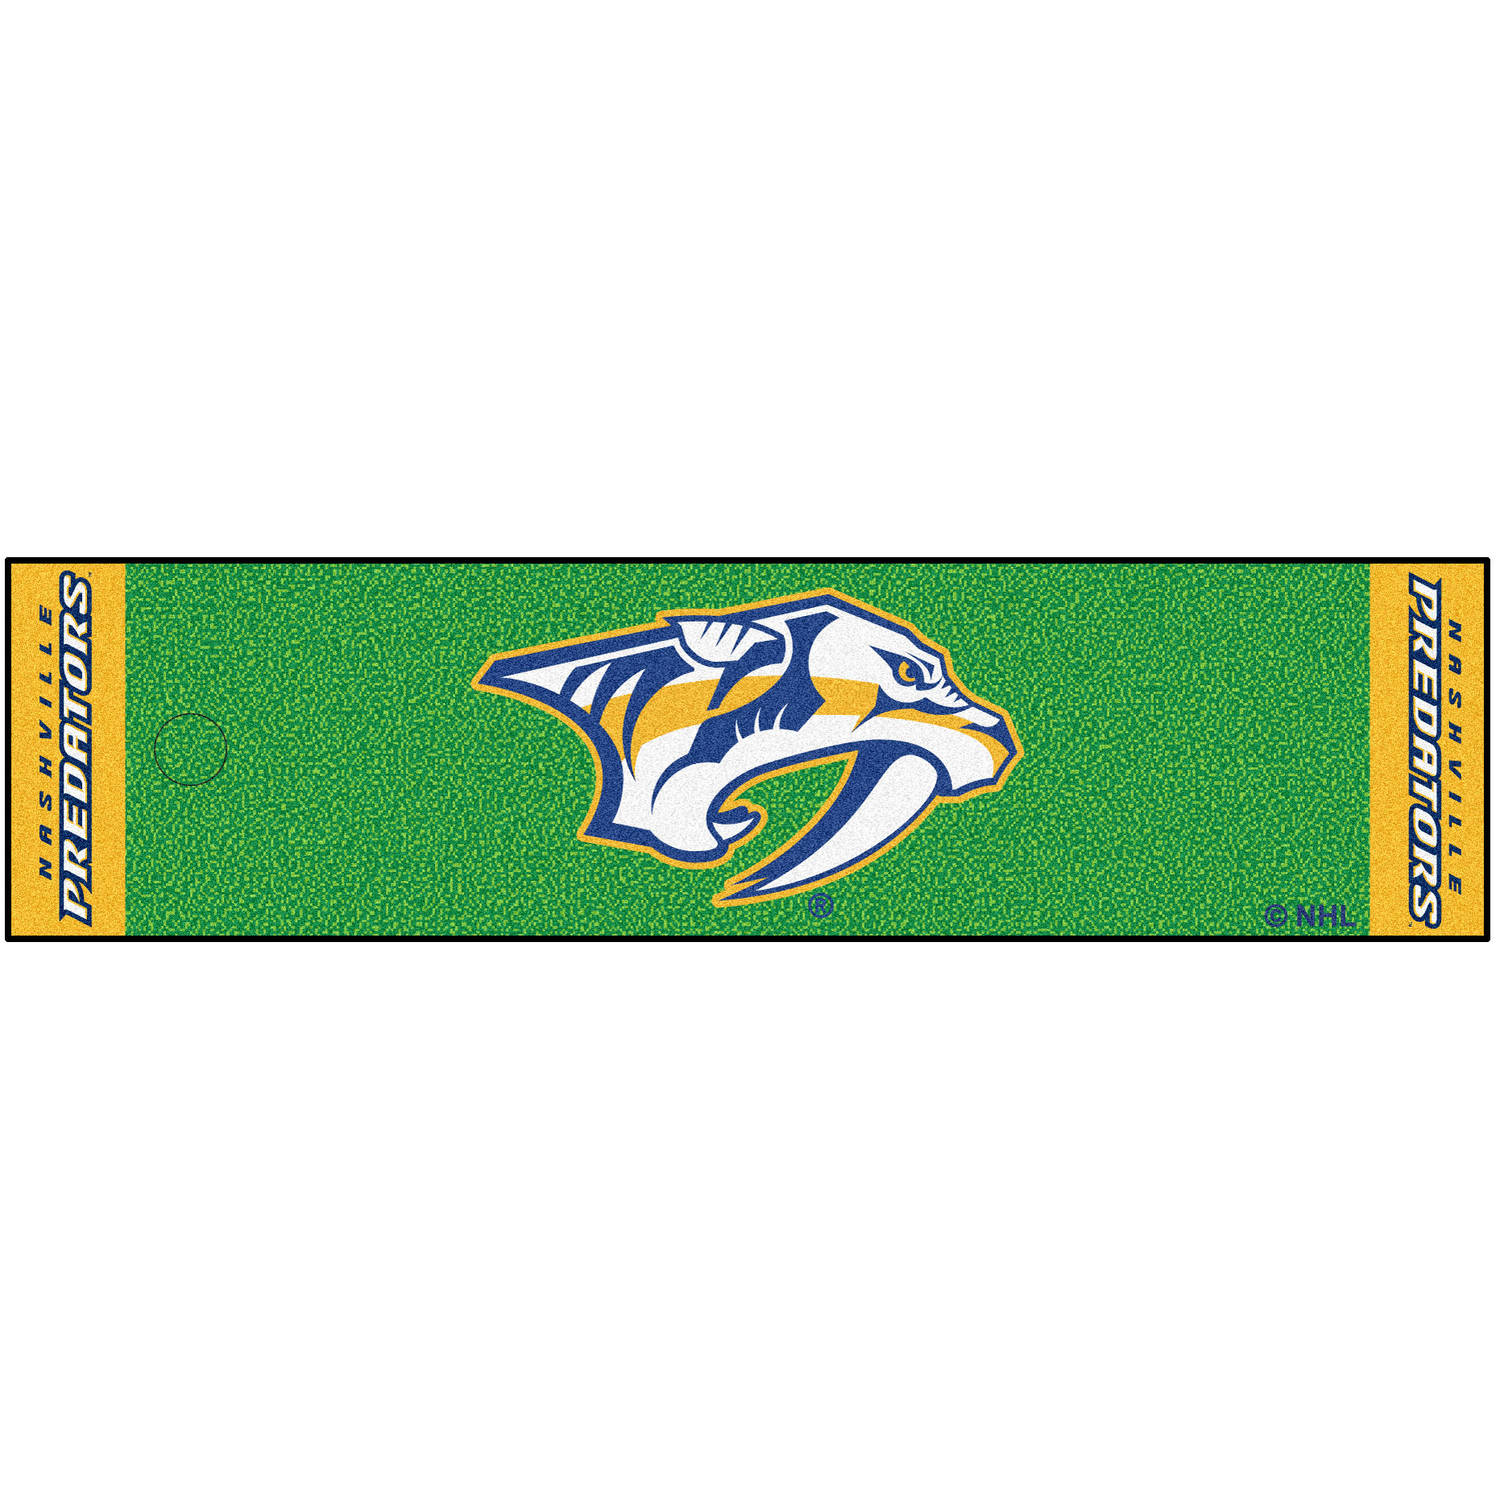 FanMats NHL Nashville Predators Putting Green Mat